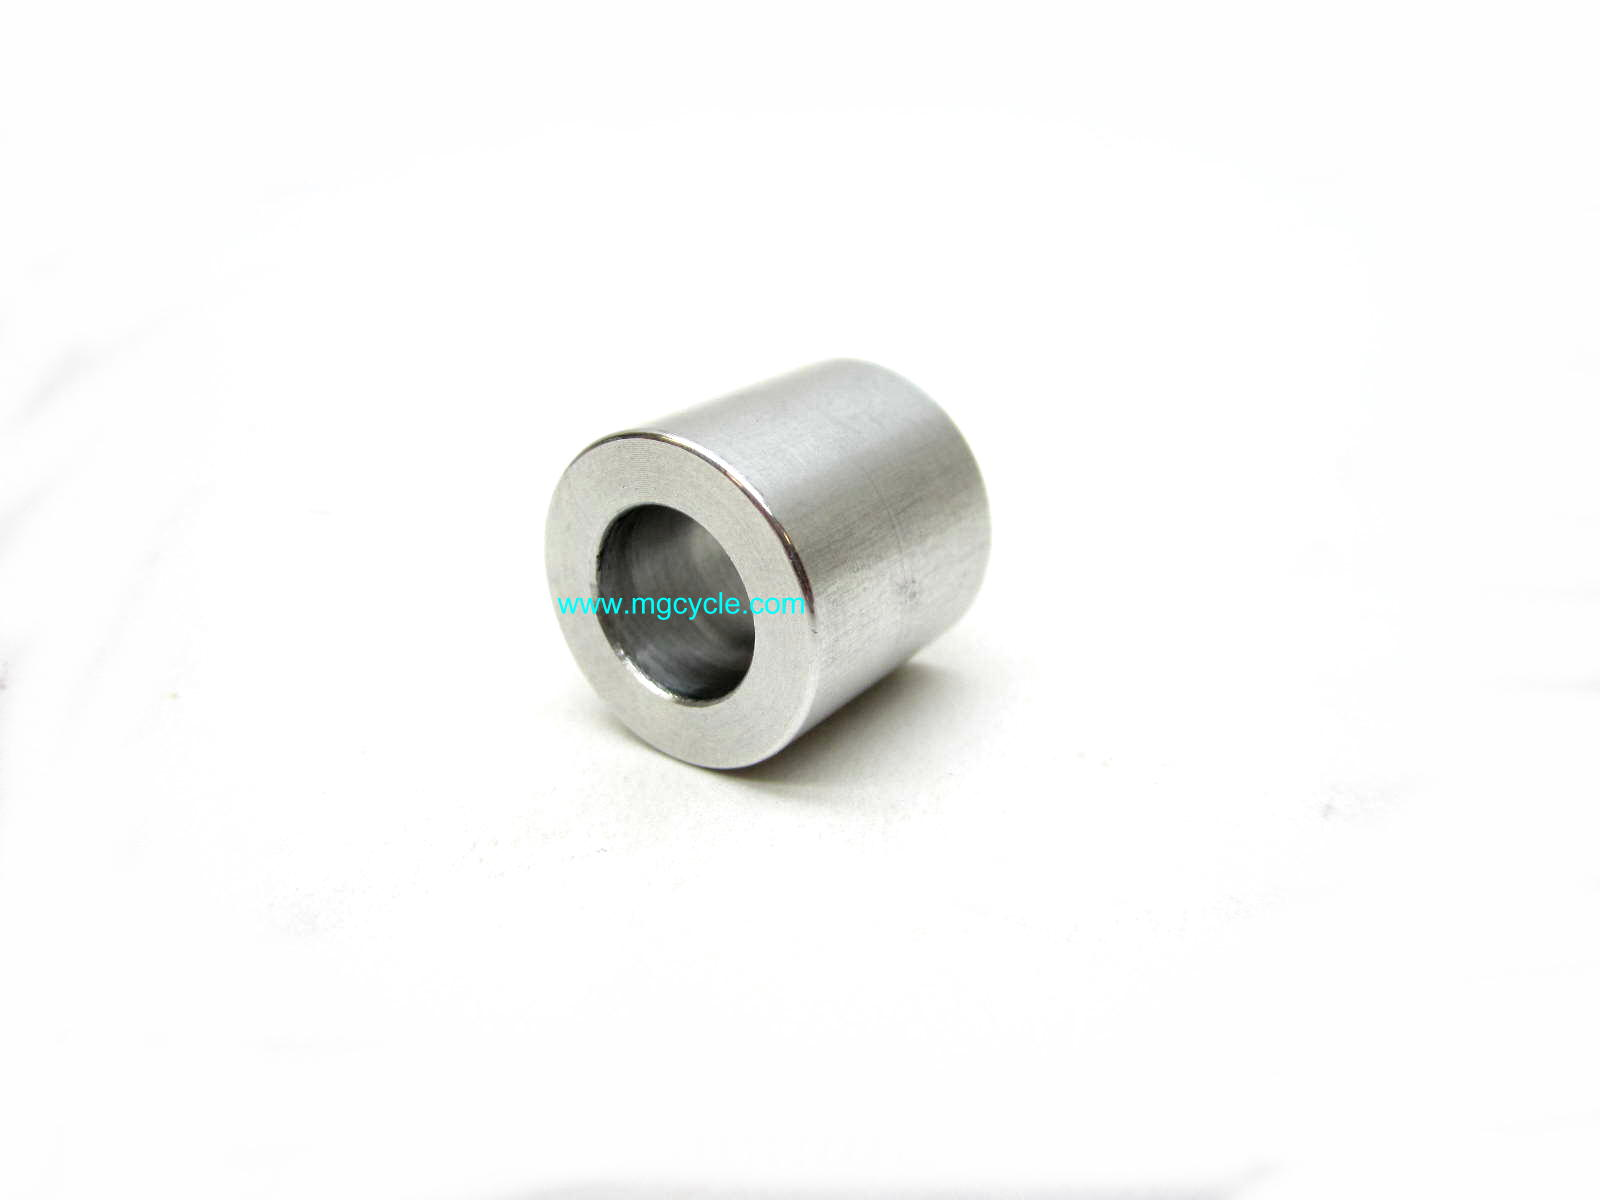 Centerstand pivot bushing 1973-2003 Big Twins GU14433500